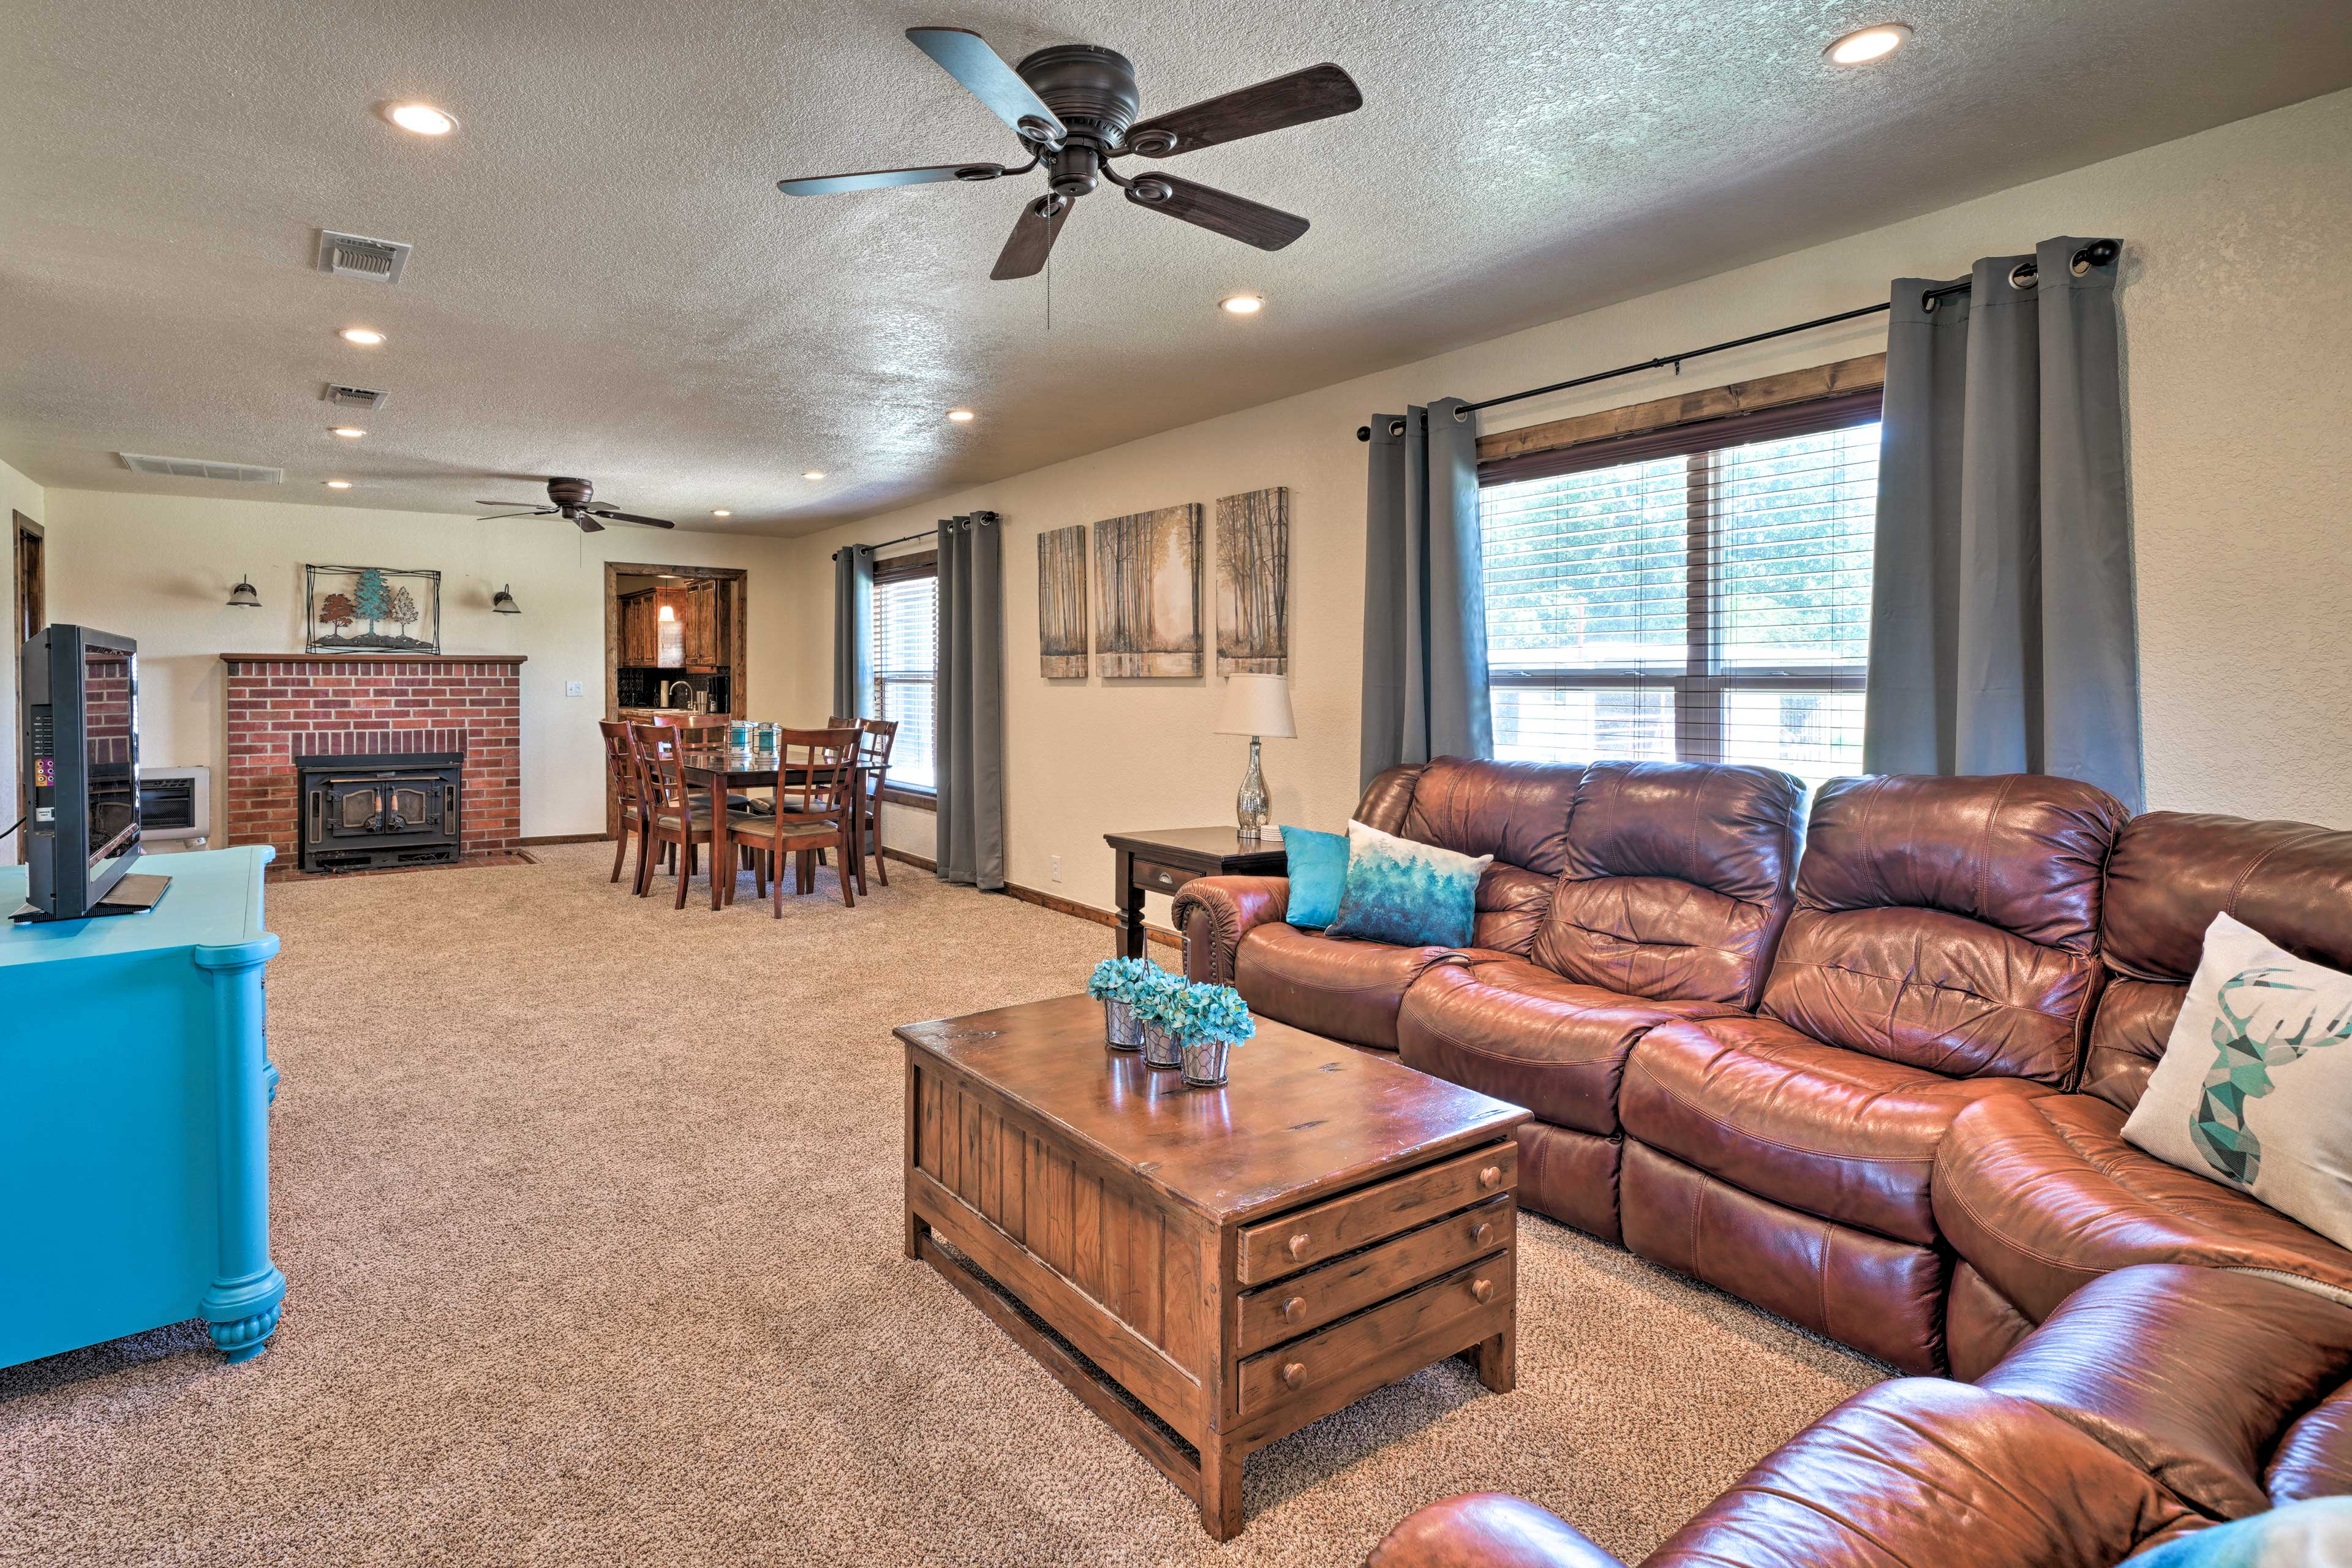 The open floor plan interior provides plenty of space for your group.